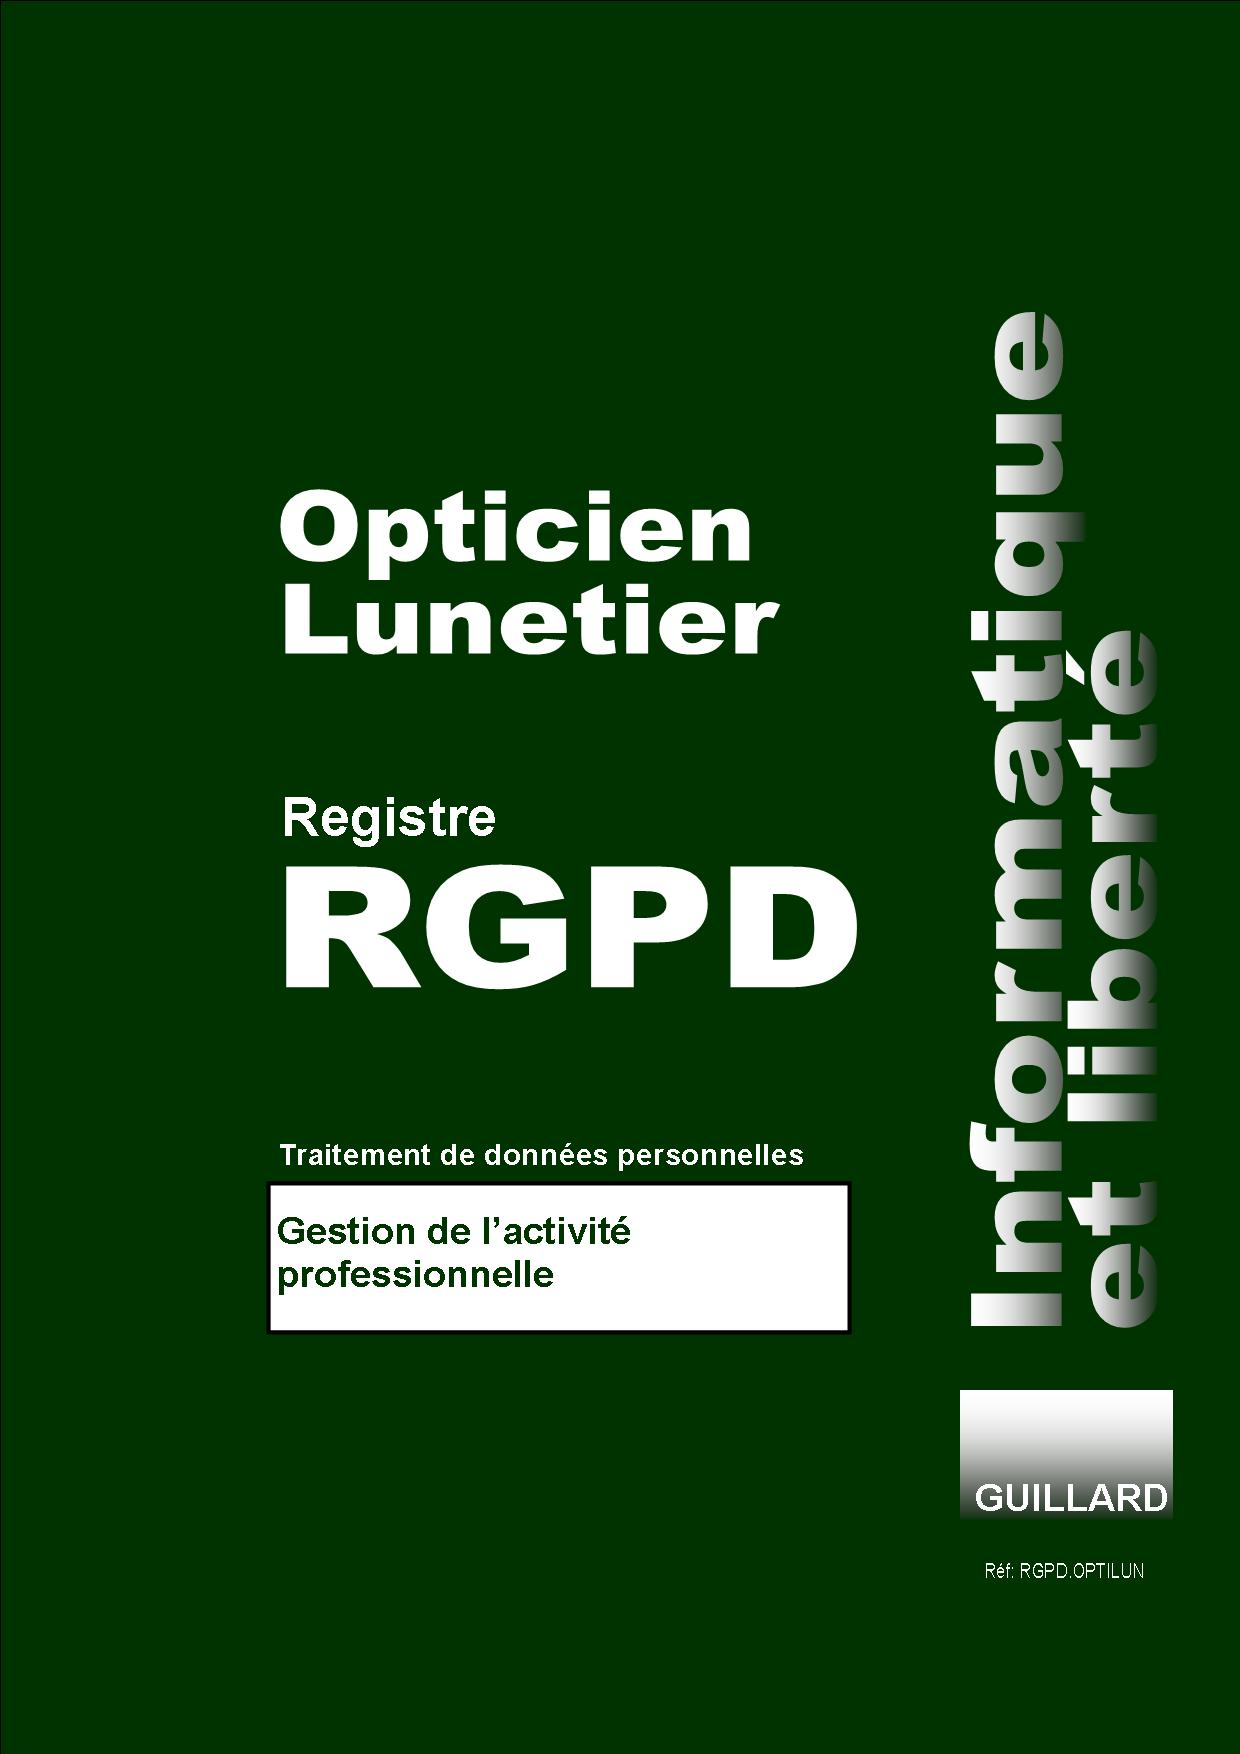 Registre  RGPD OPTICIEN LUNETIER de TRAITEMENT DES DONNEES PERSONNELLES - RGPD.OPTILUN